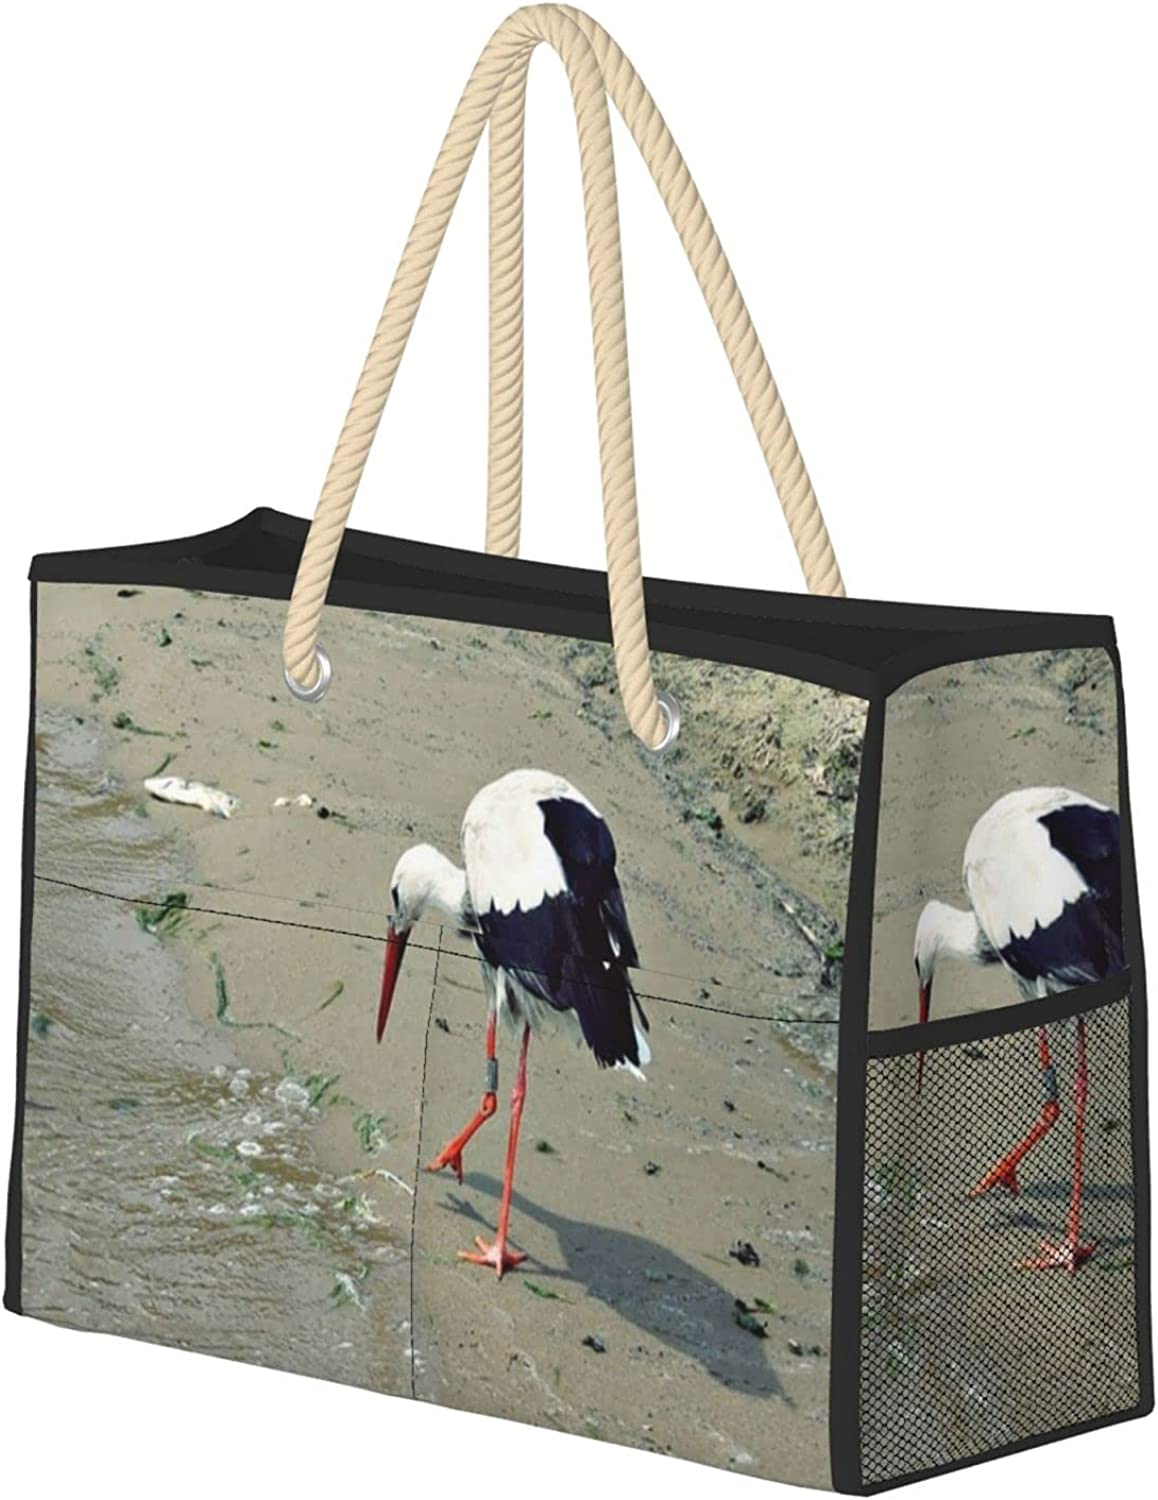 Large Beach Bag Travel for Great interest with - free shipping Pool Women Tote